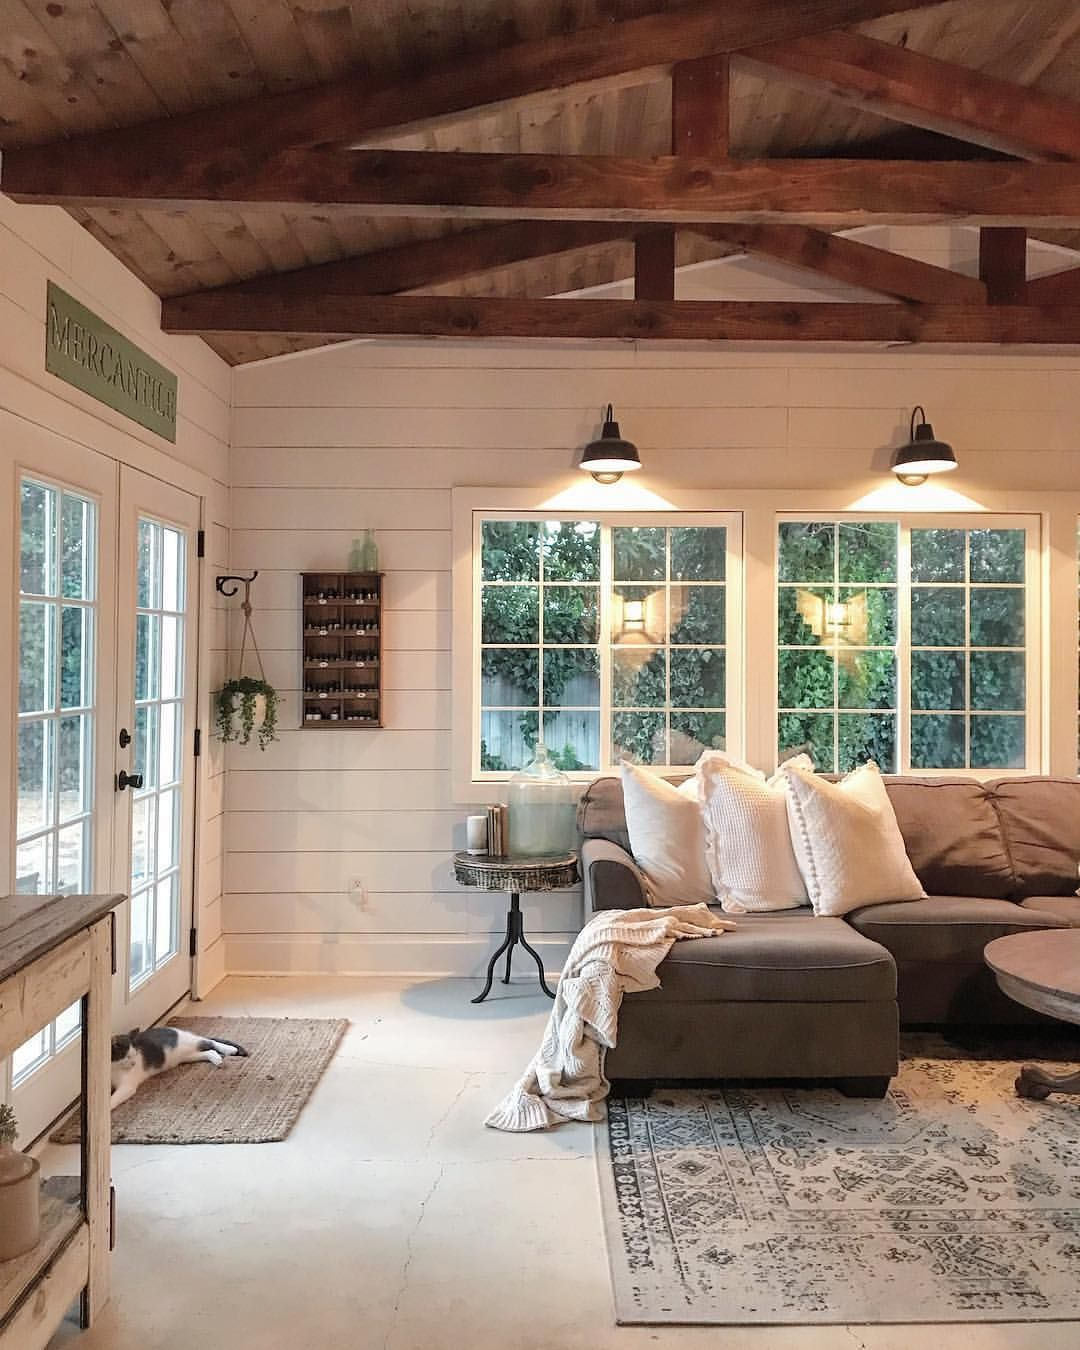 Natural Living Room Design Ideas: Shiplap Walls, Wood-clad Ceilings, And An Abundance Of